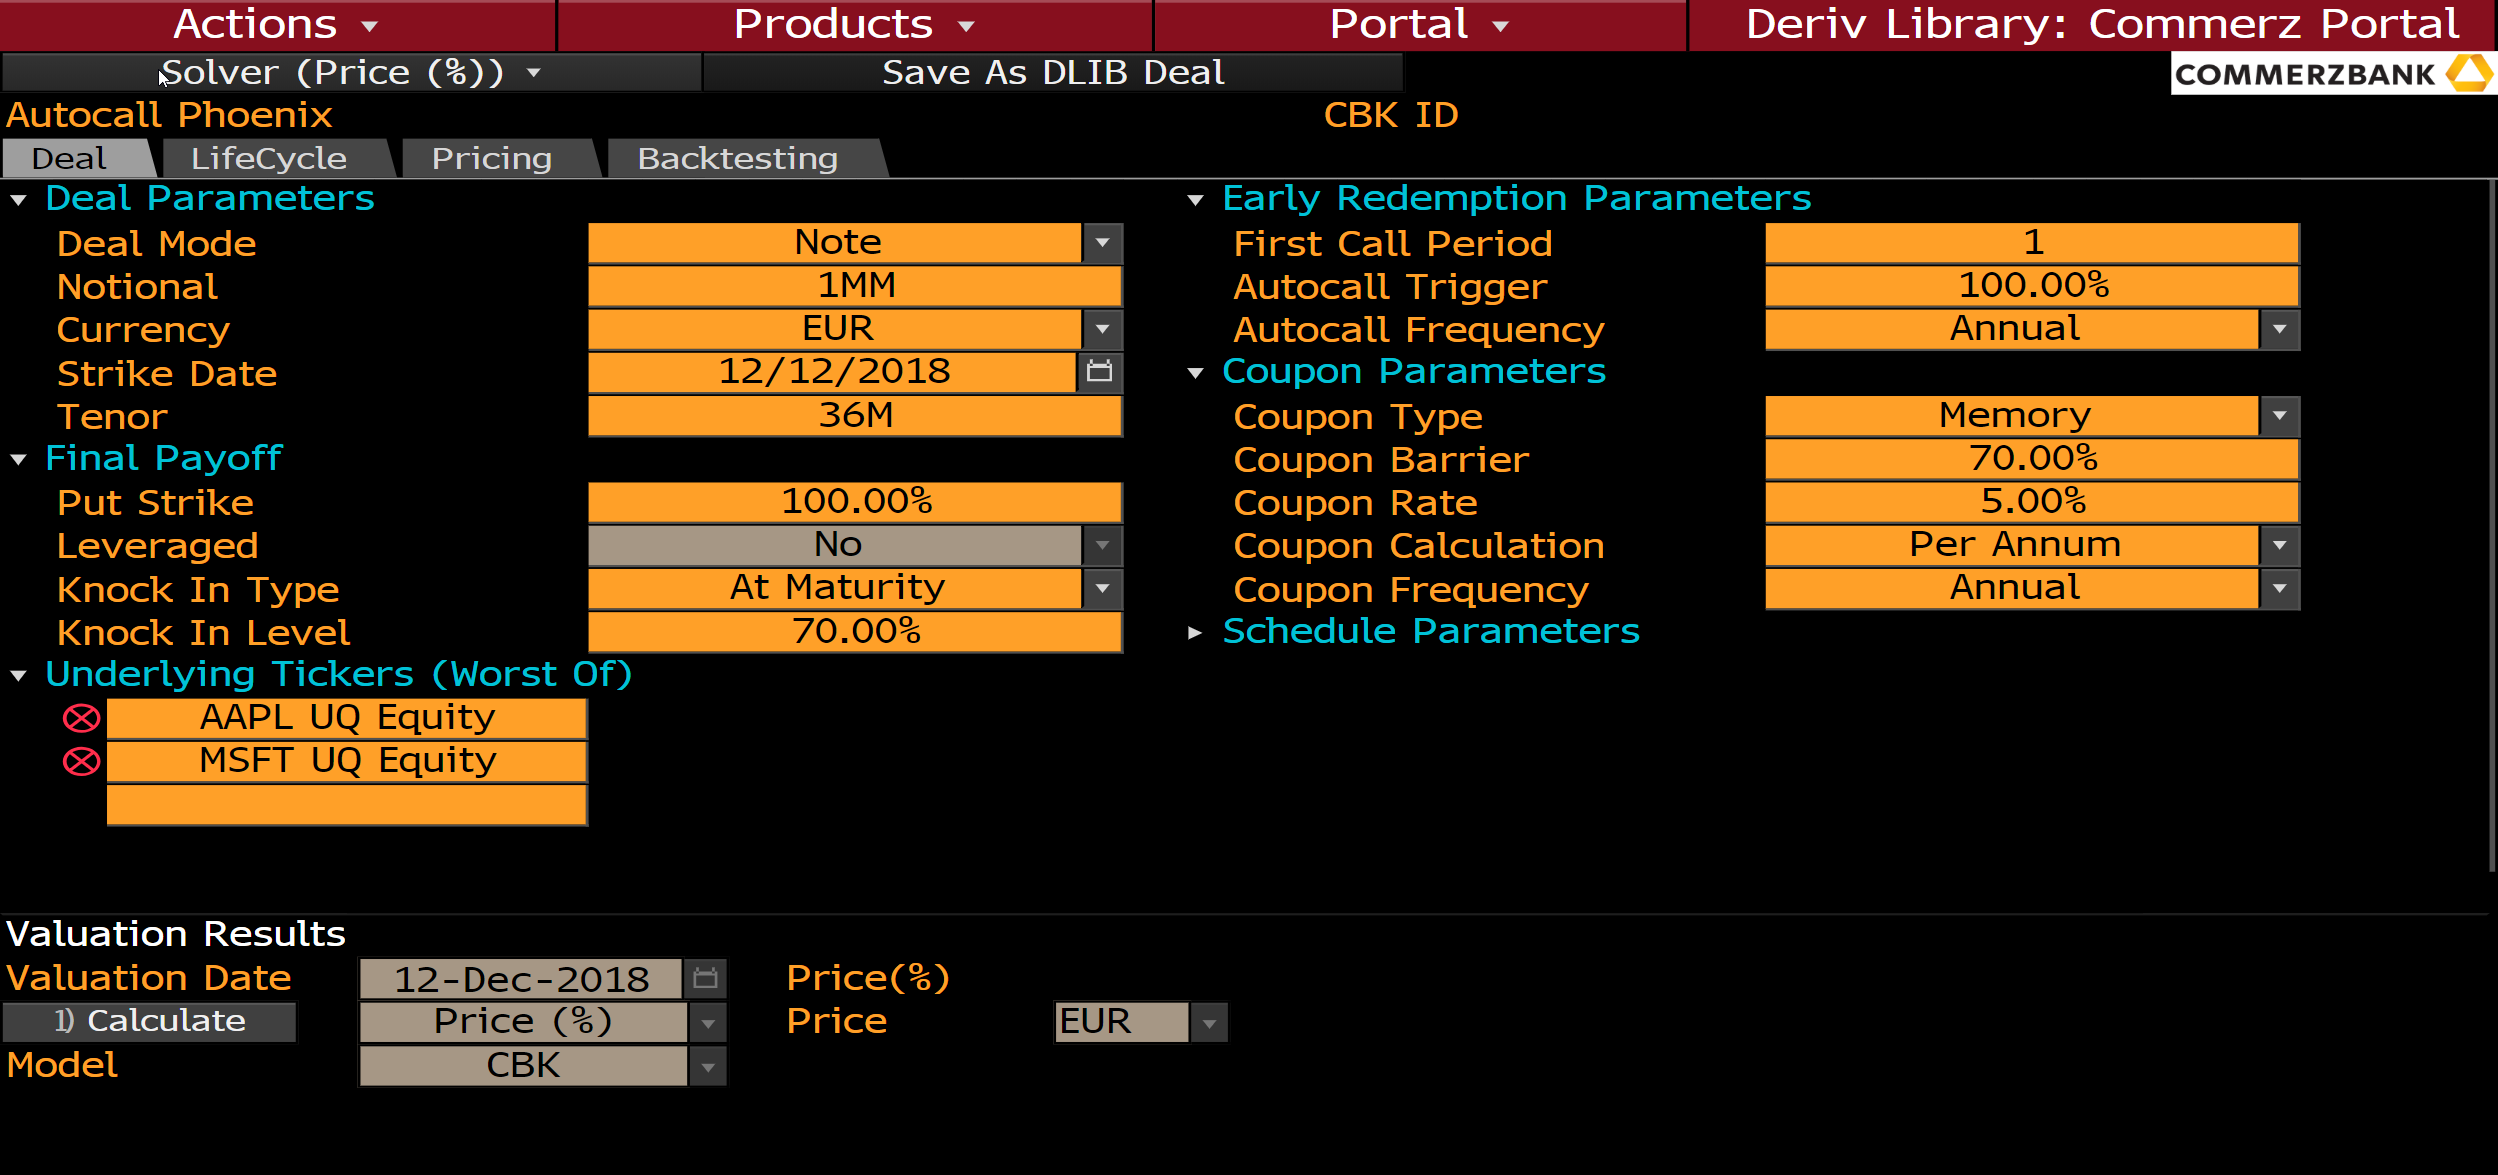 Commerzbank Offers Real Time Structured Product Pricing On Bloomberg Dlib L P